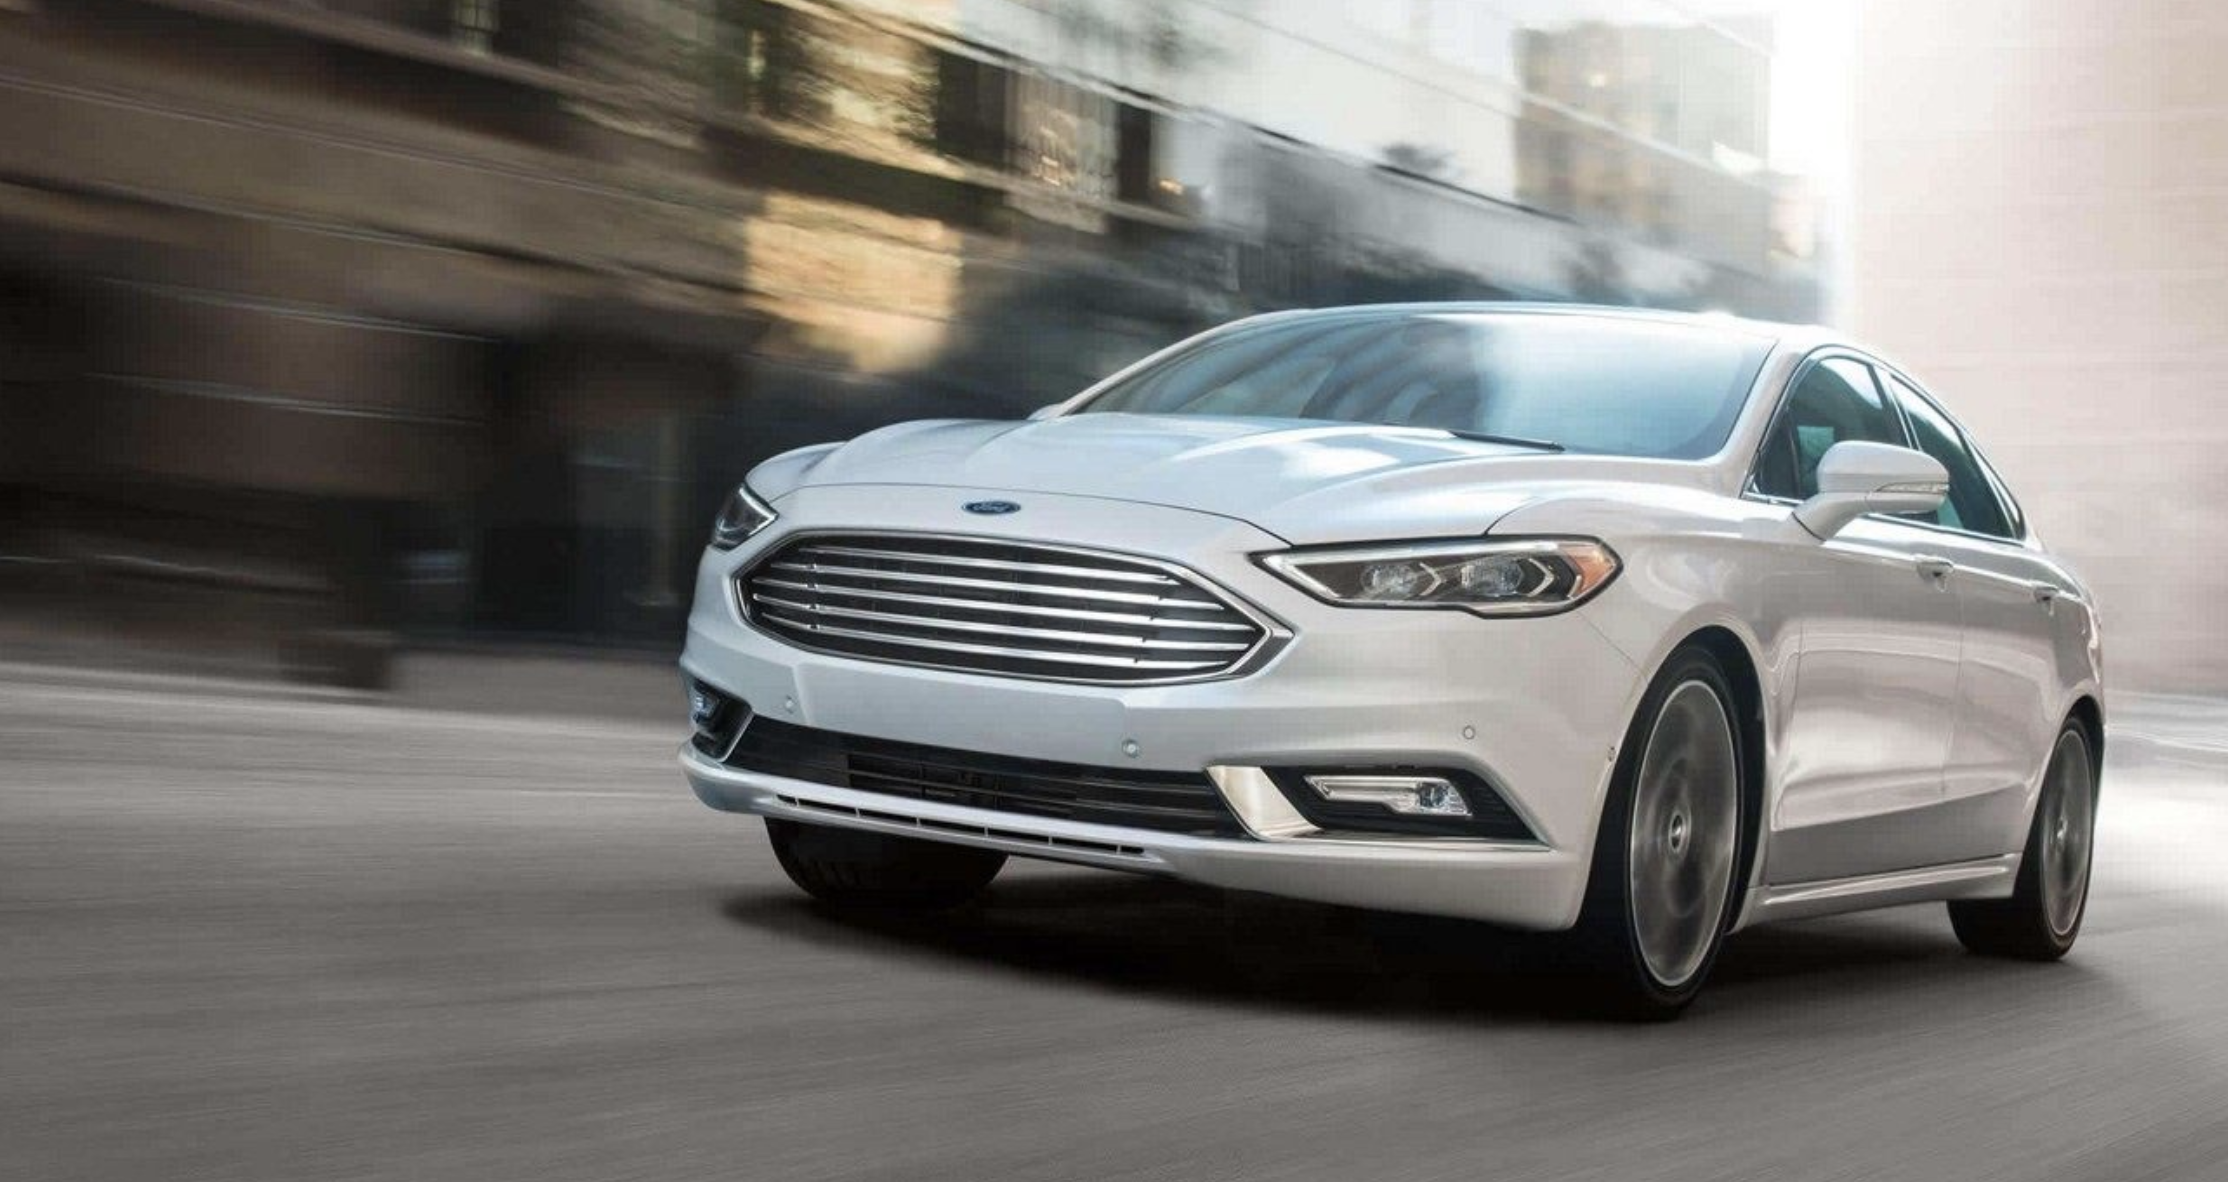 Buy or Lease a New Ford Fusion Minnesota Apple Valley Ford Dealer MN